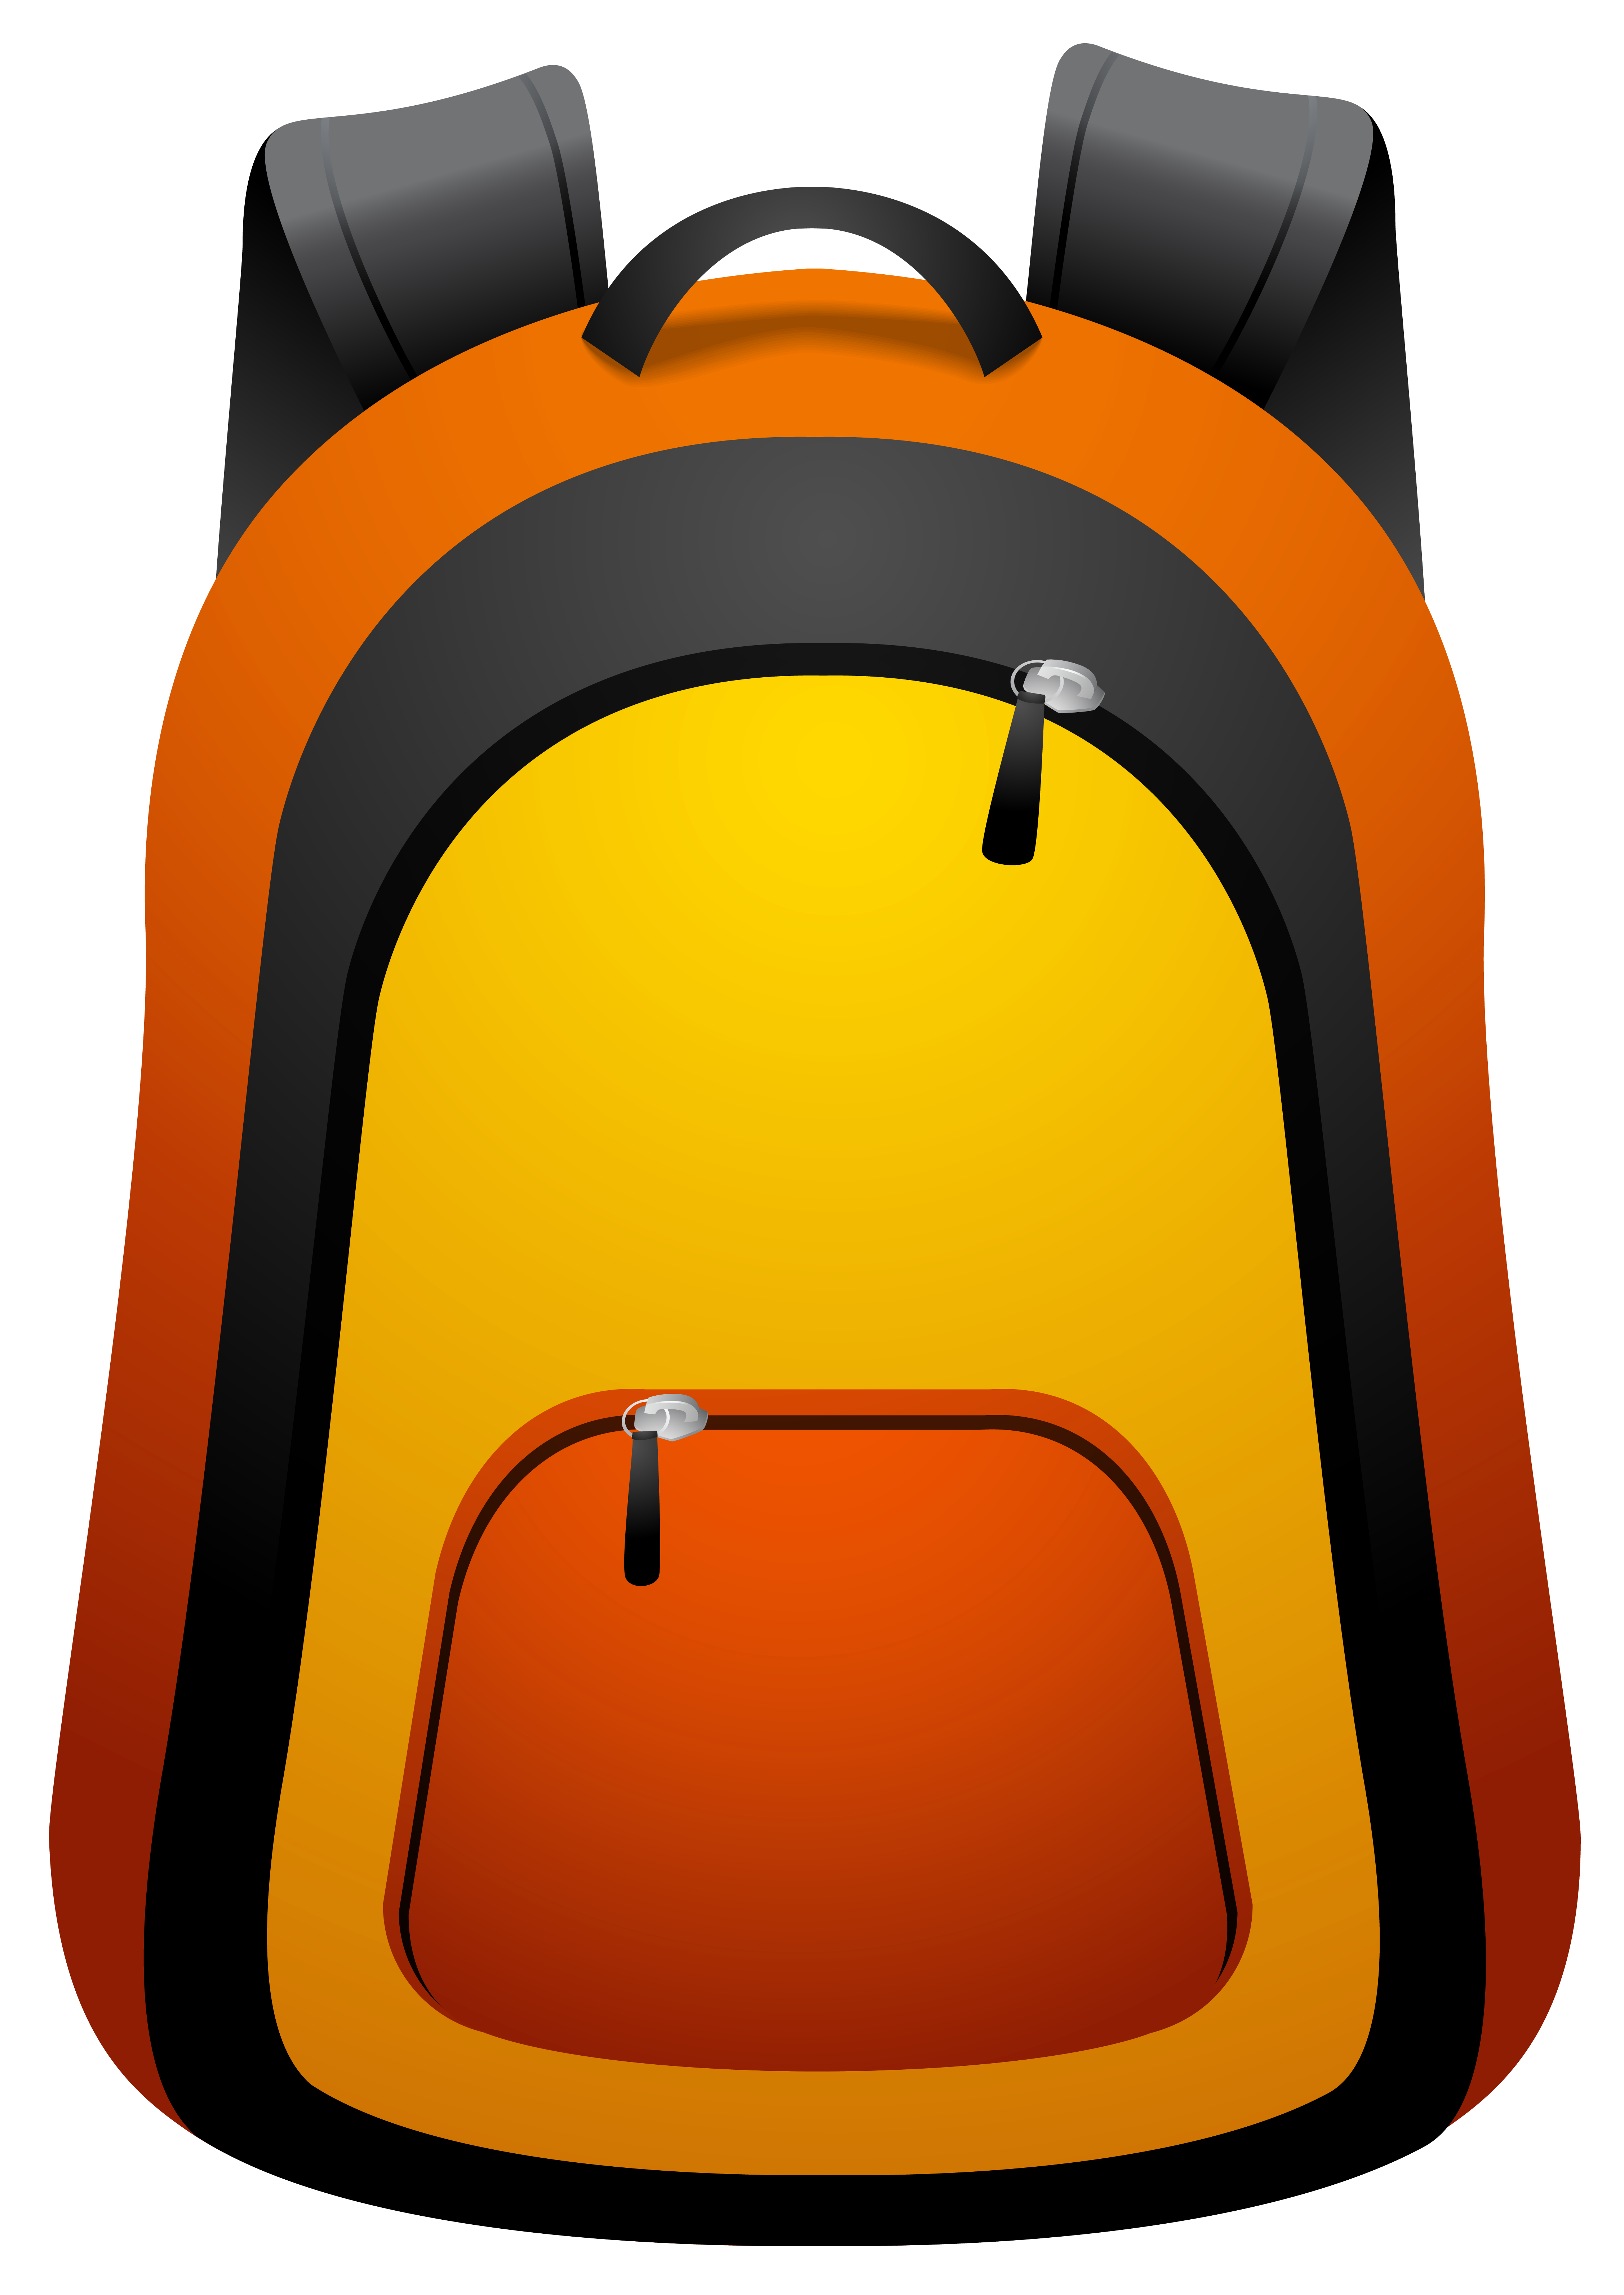 Png image gallery yopriceville. Clipart backpack backbag